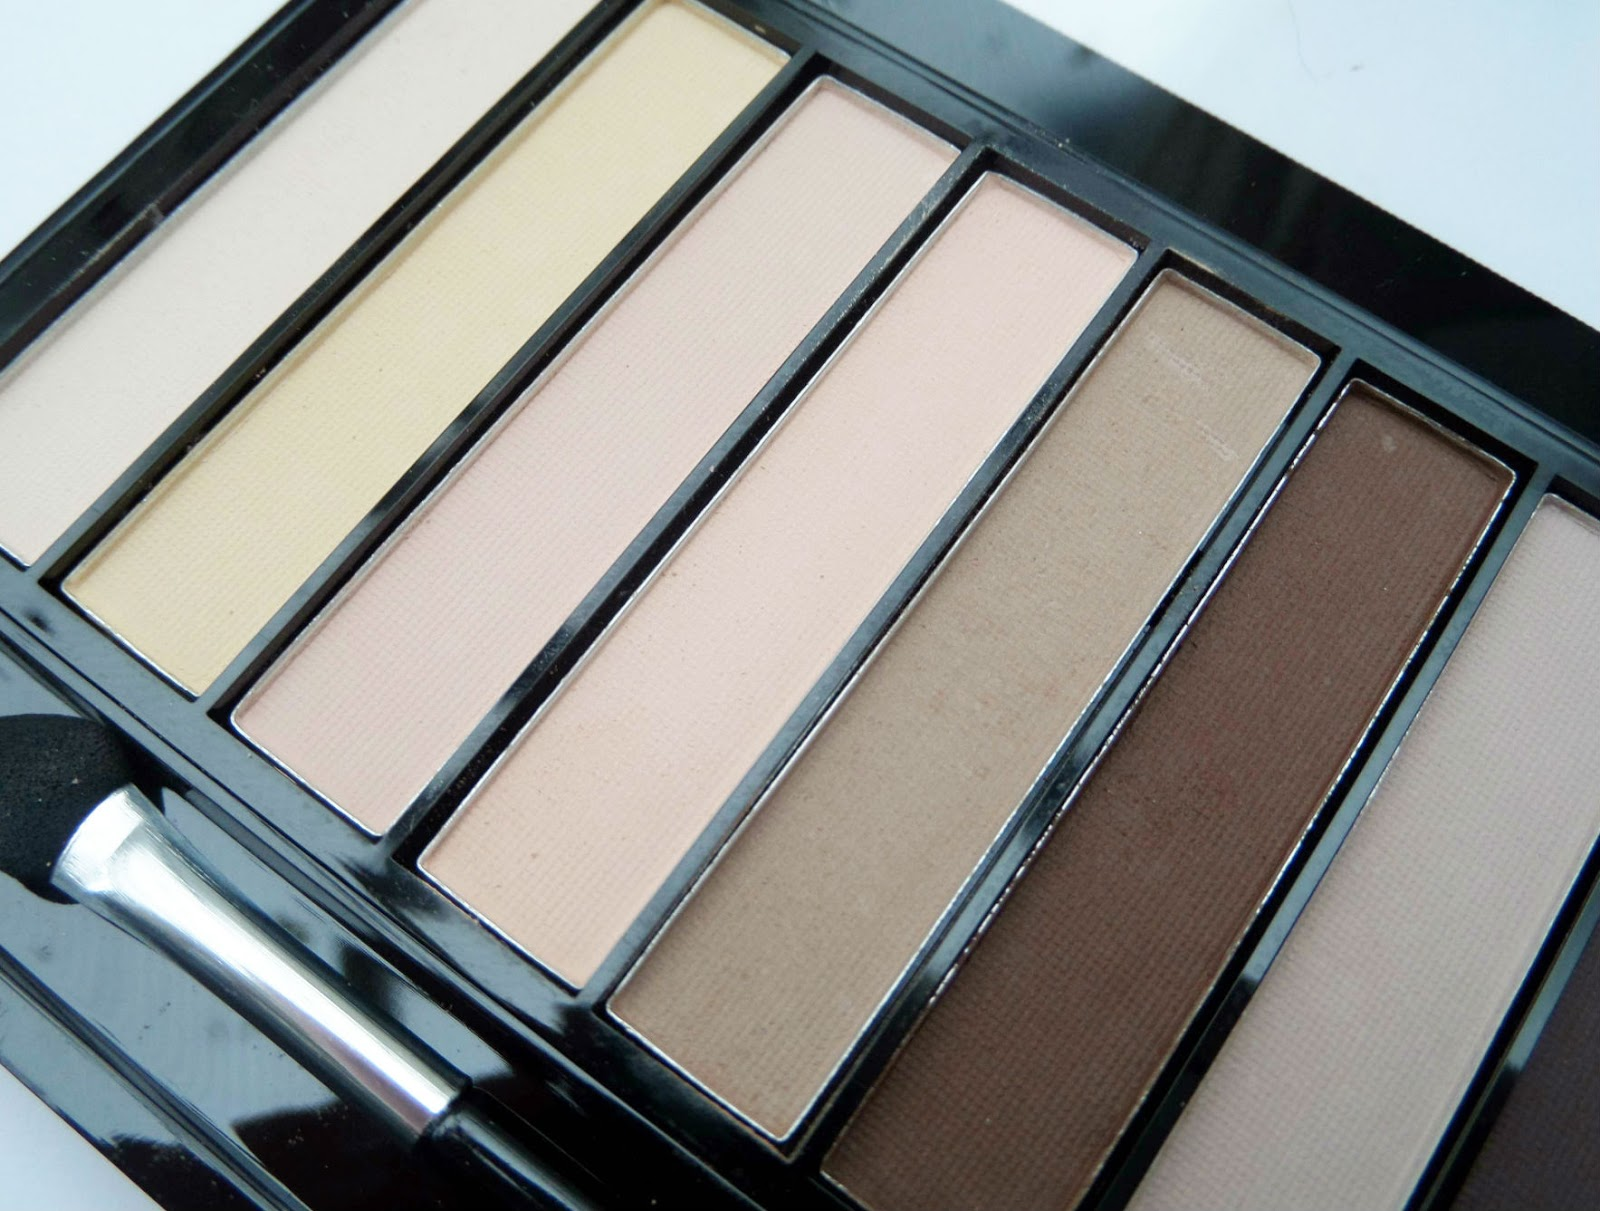 Makeup Revolution Essential Mattes Palette The Browns